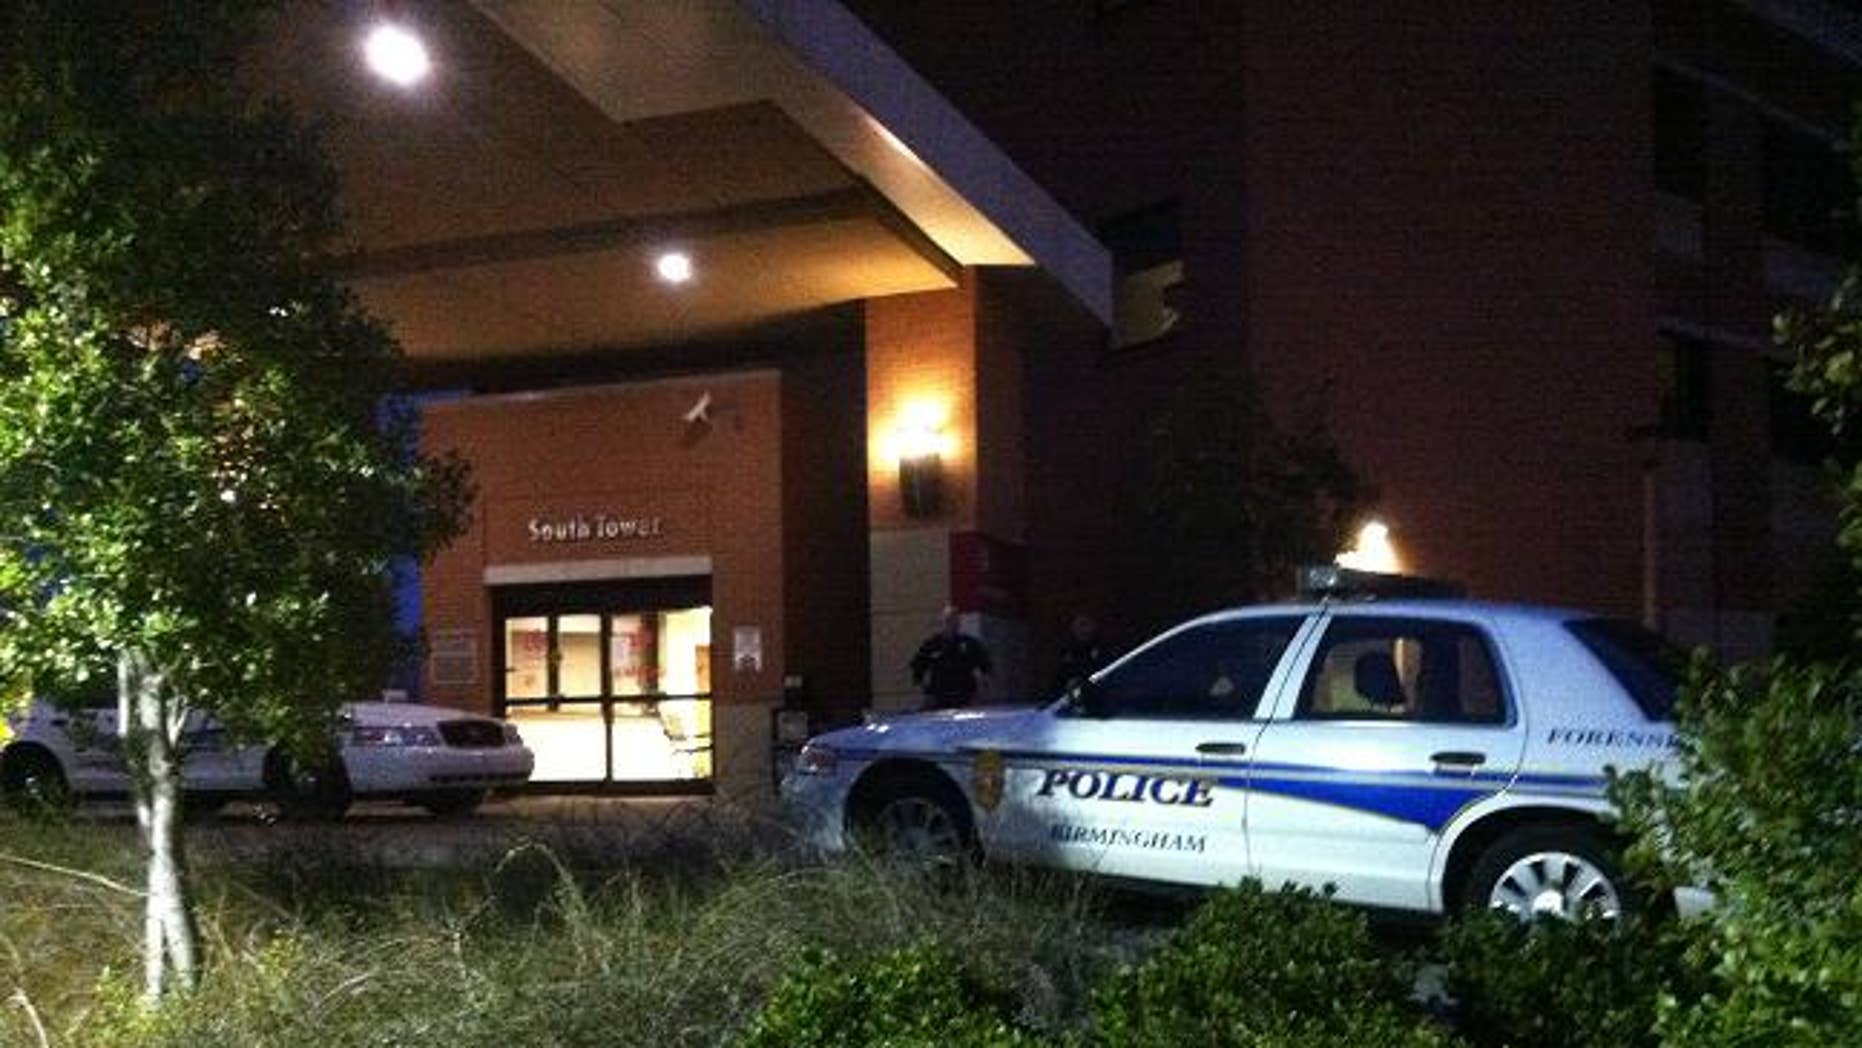 This photo shows the crime scene outside the Alabama hospital where a gunman wounded 3.